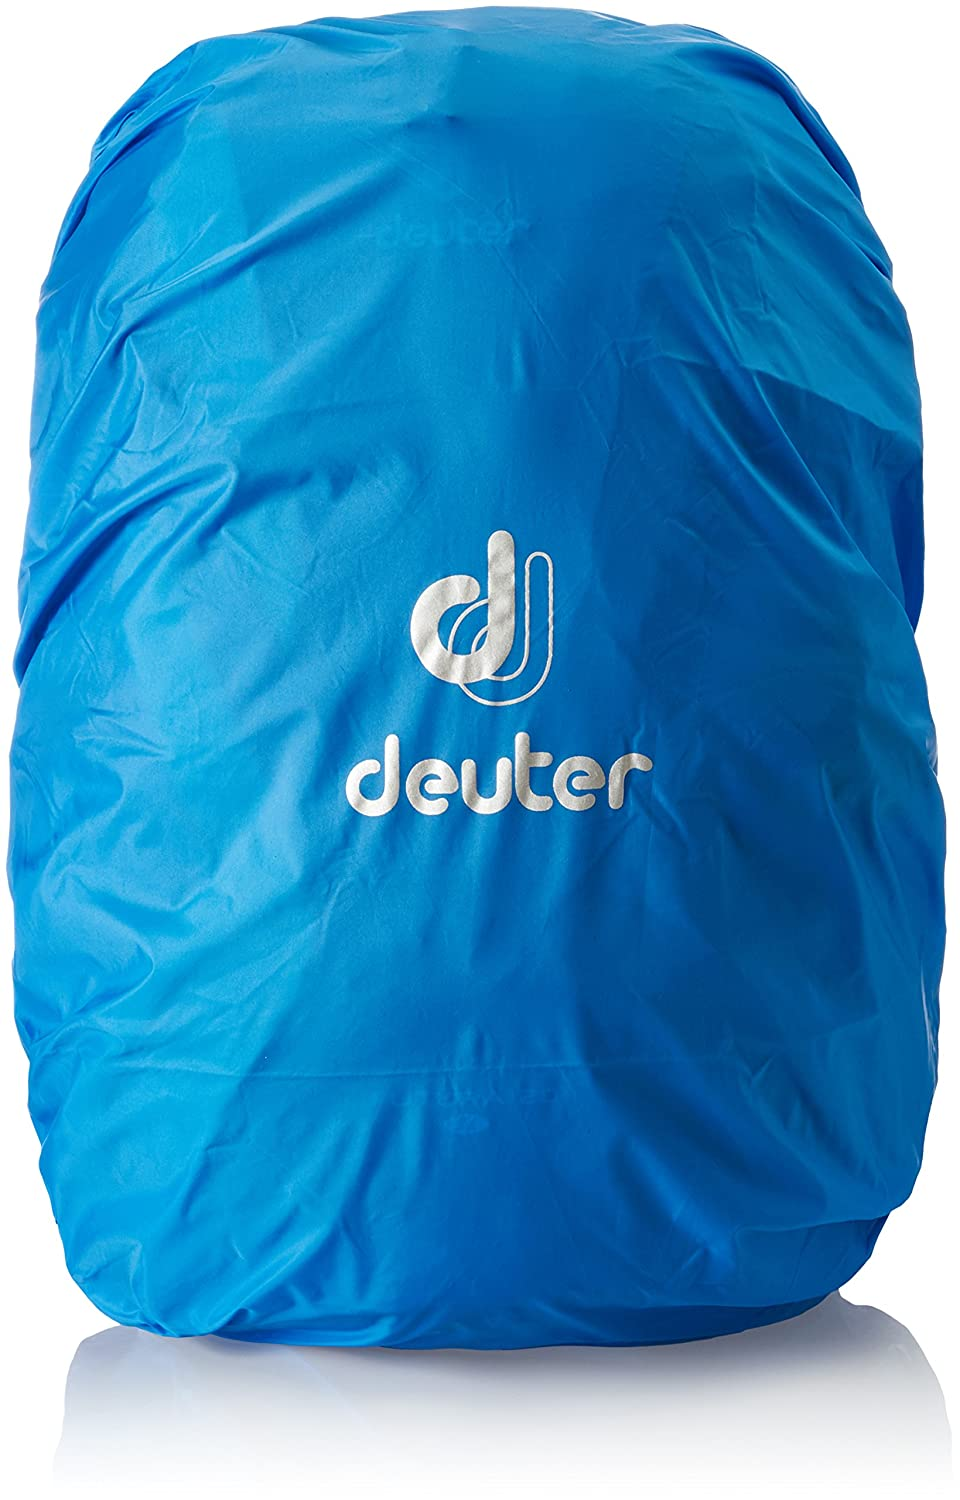 Deuter Rain Cover II Waterproof Rain Cover